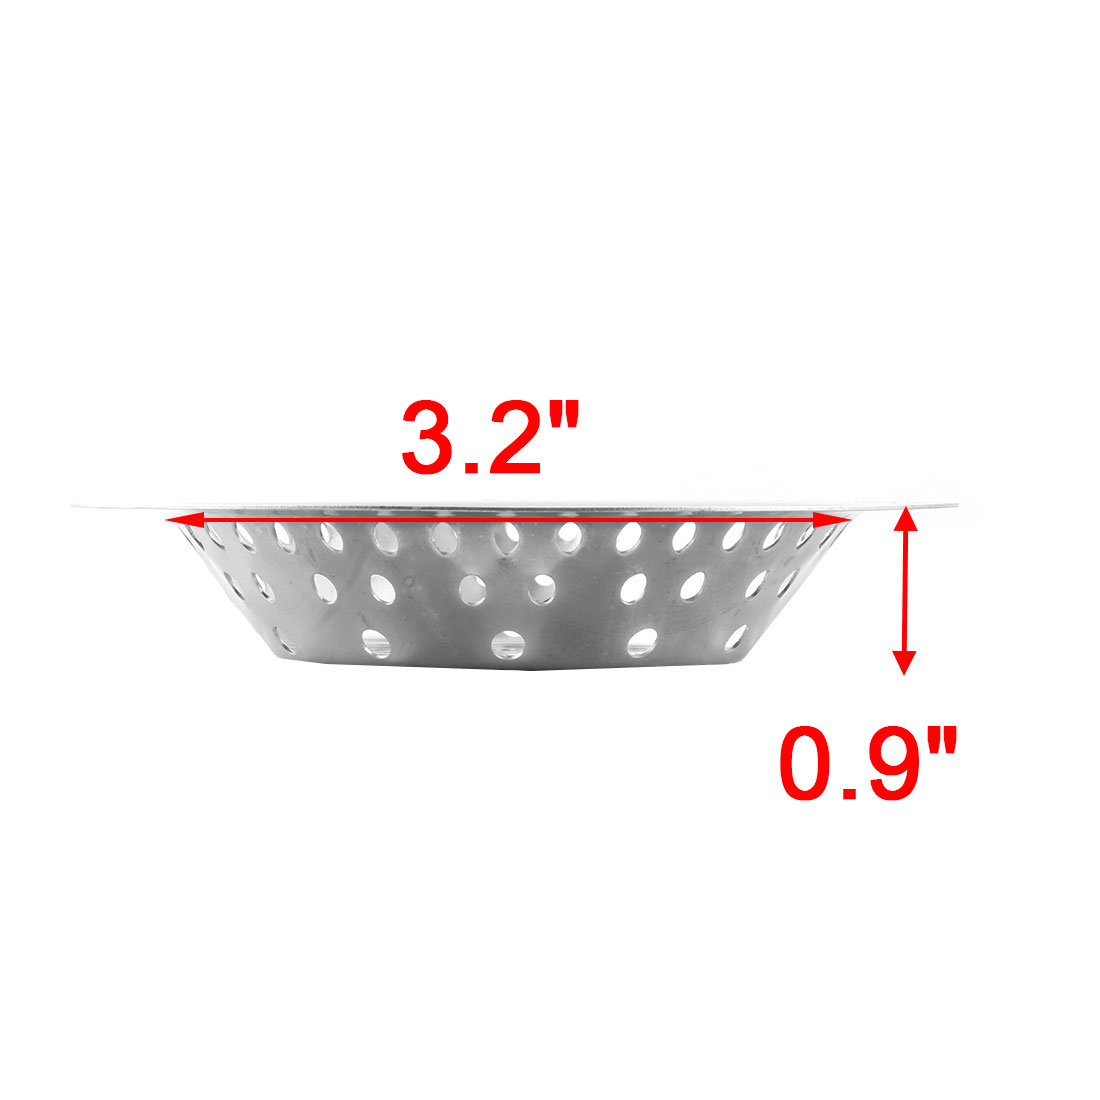 Kitchen Bathroom Metal Sink Basin Garbage Strainer Stopper 4.1 Inch Dia 3pcs - image 2 of 3